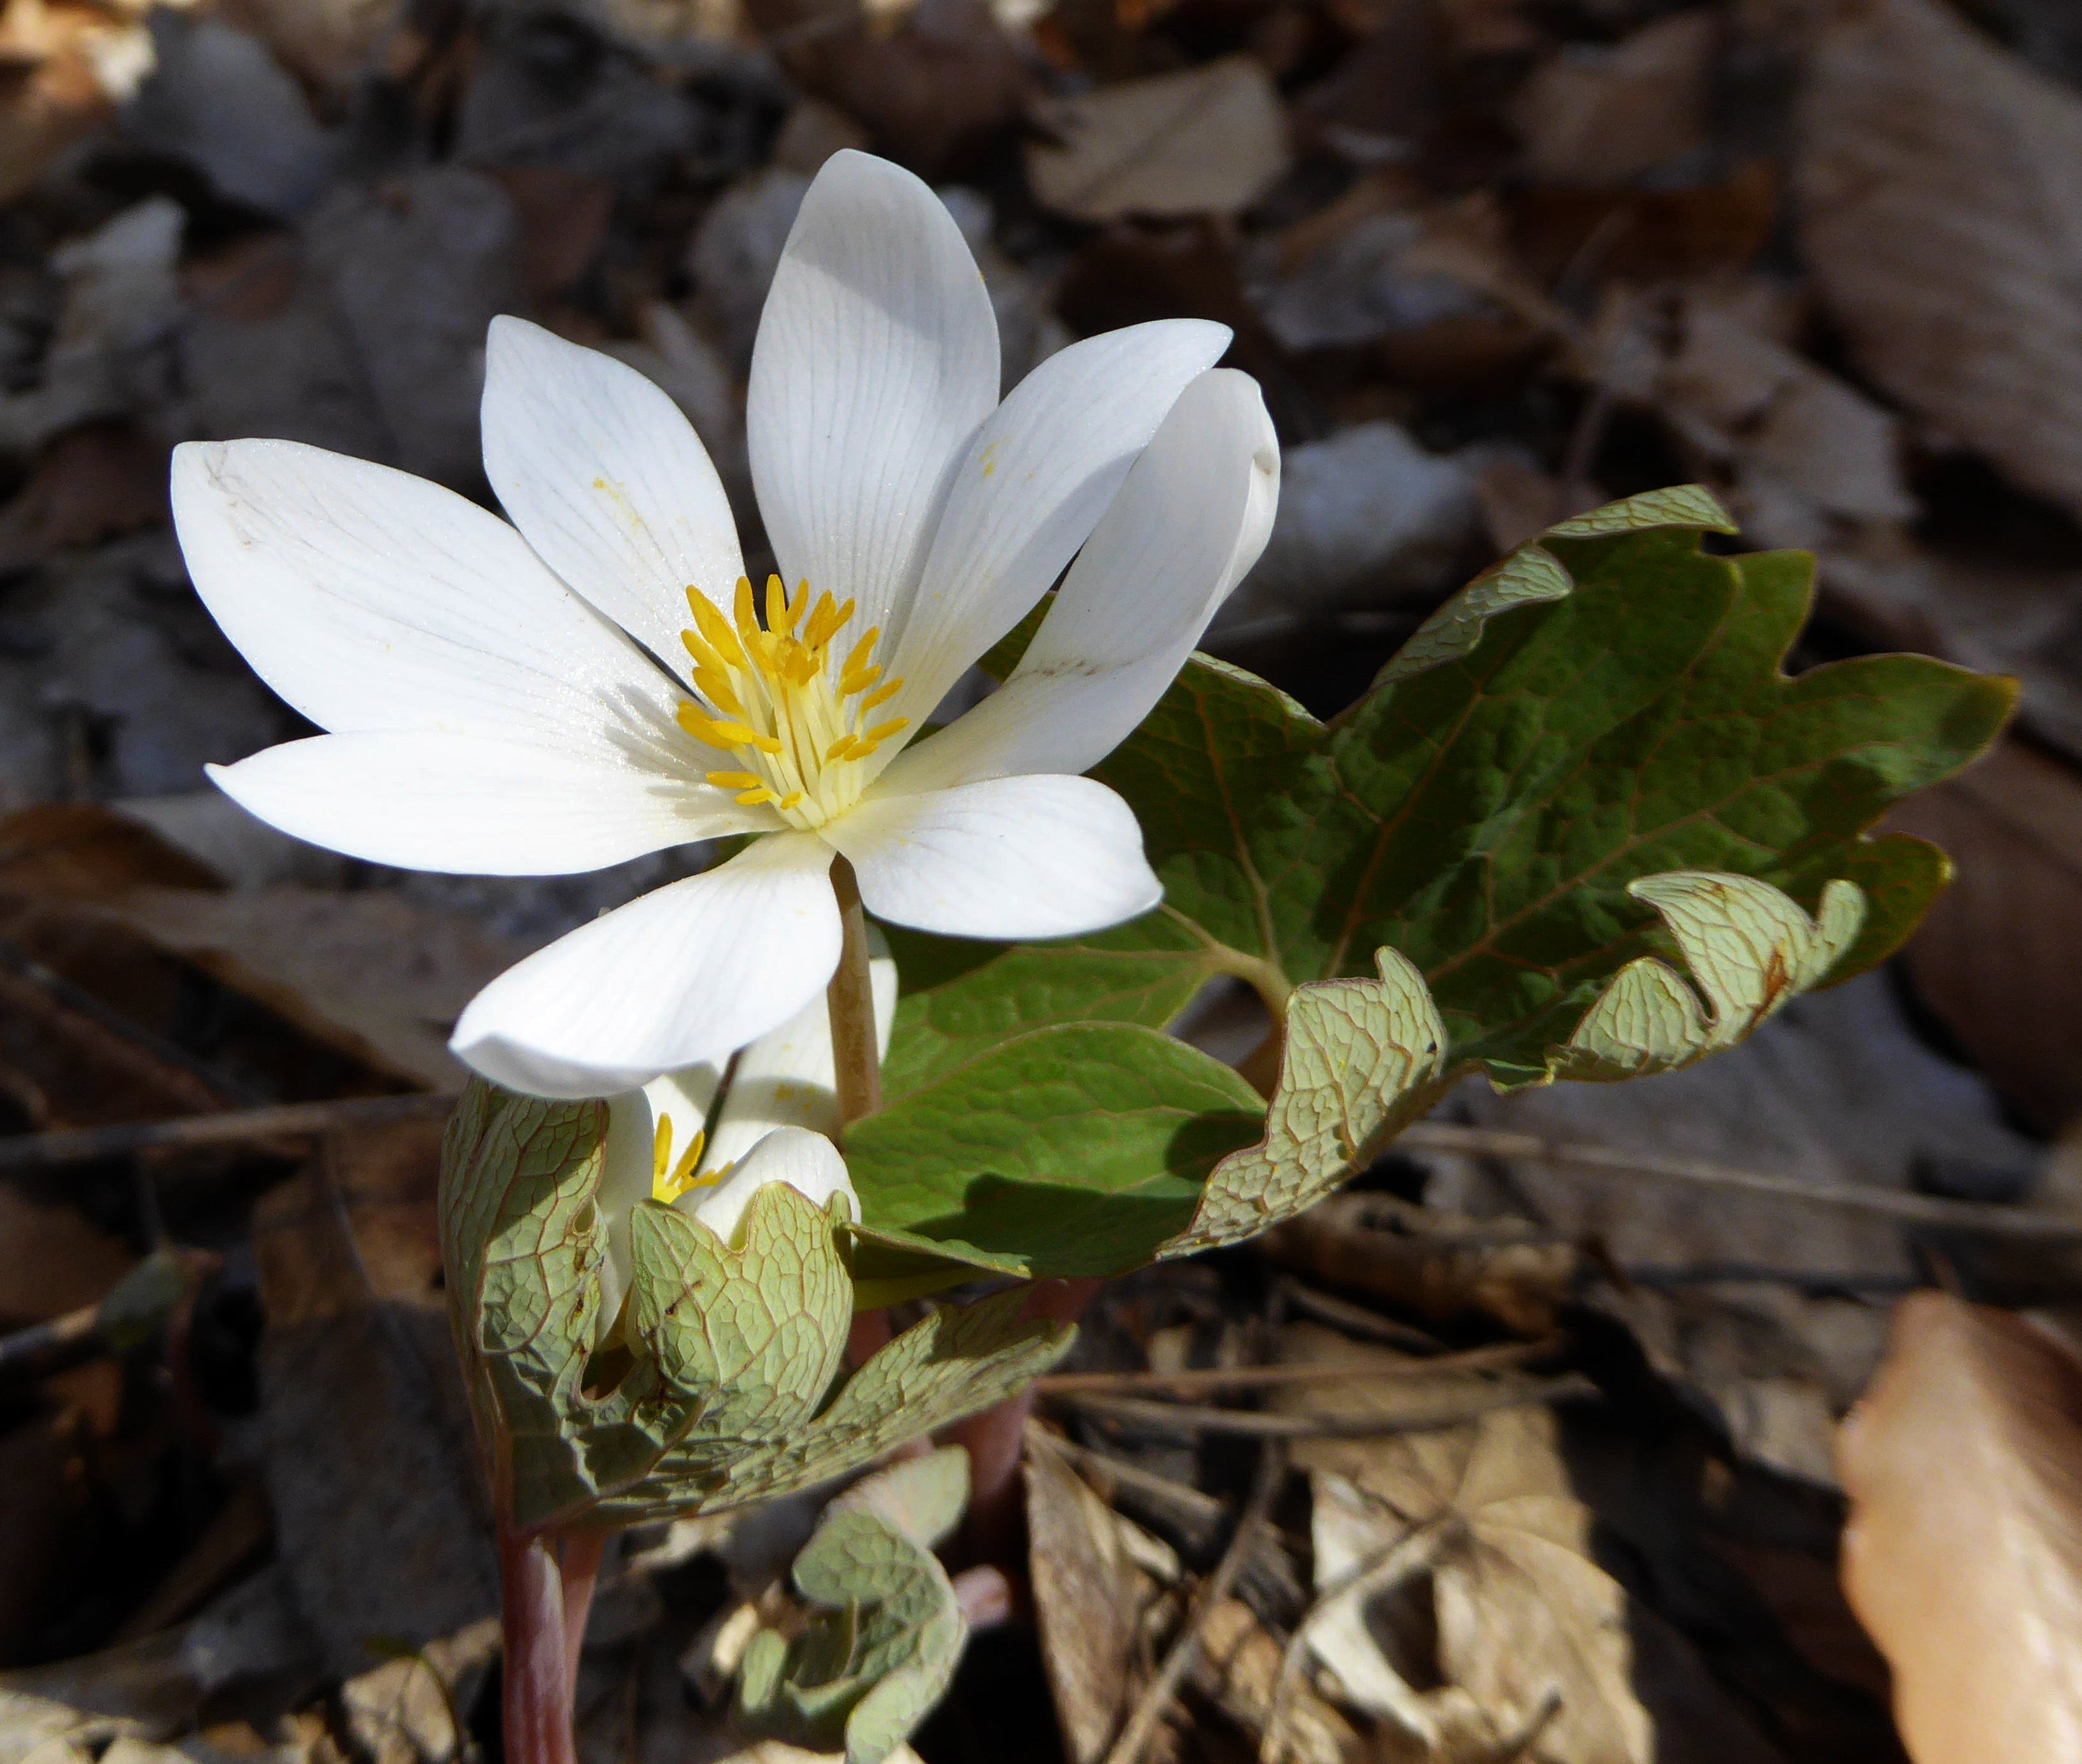 Bloodroot Grows From 8 To 20 In Tall The Flowers Bloom From March To May Depending On The Region And Weather They Have 8 12 Delicate W Rhizome Flowers Petals